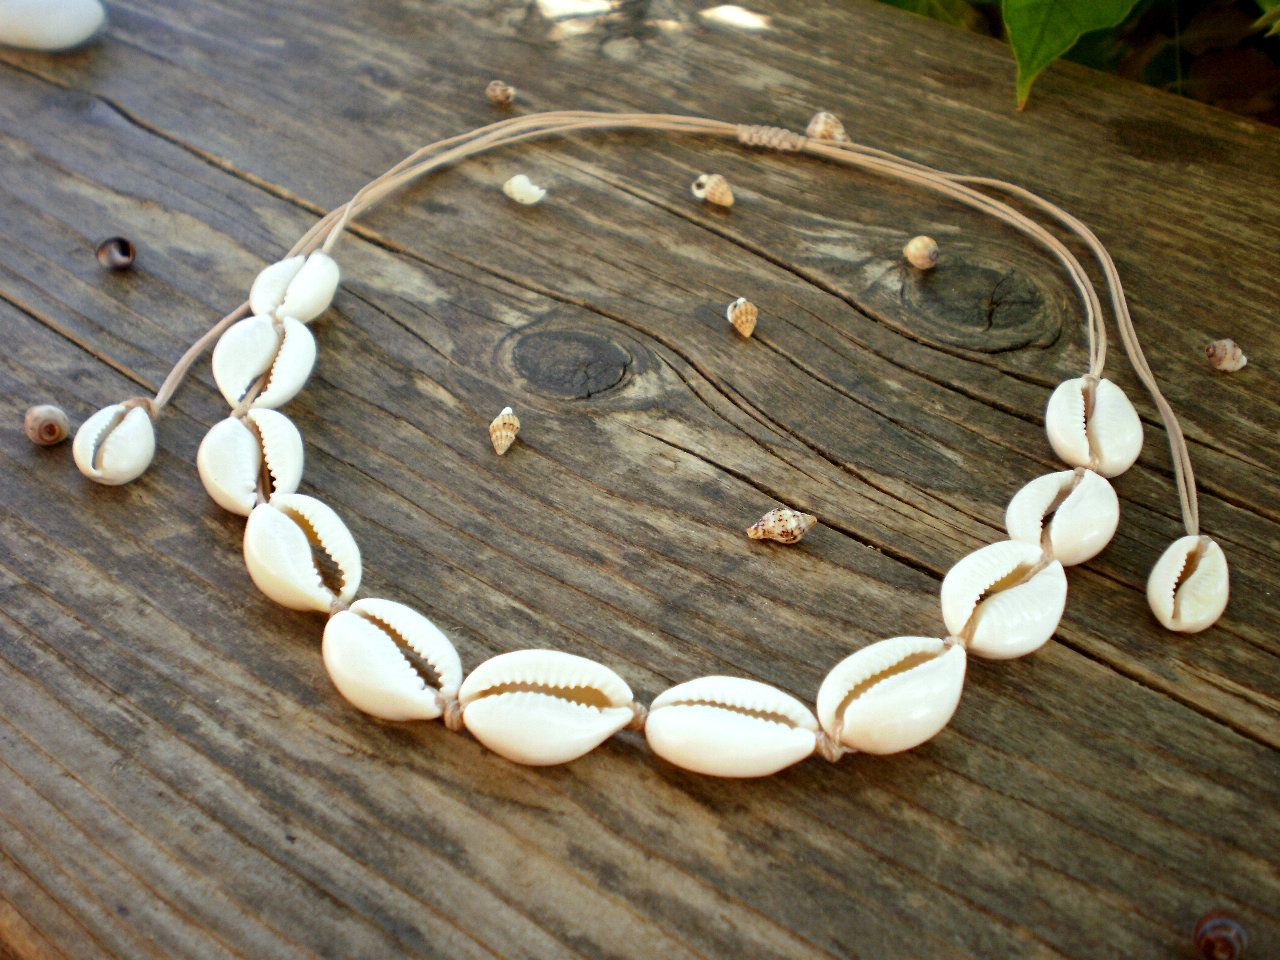 ef430ae260d25 Shell necklace, cowrie shell choker, seashell beach jewelry, puka ...